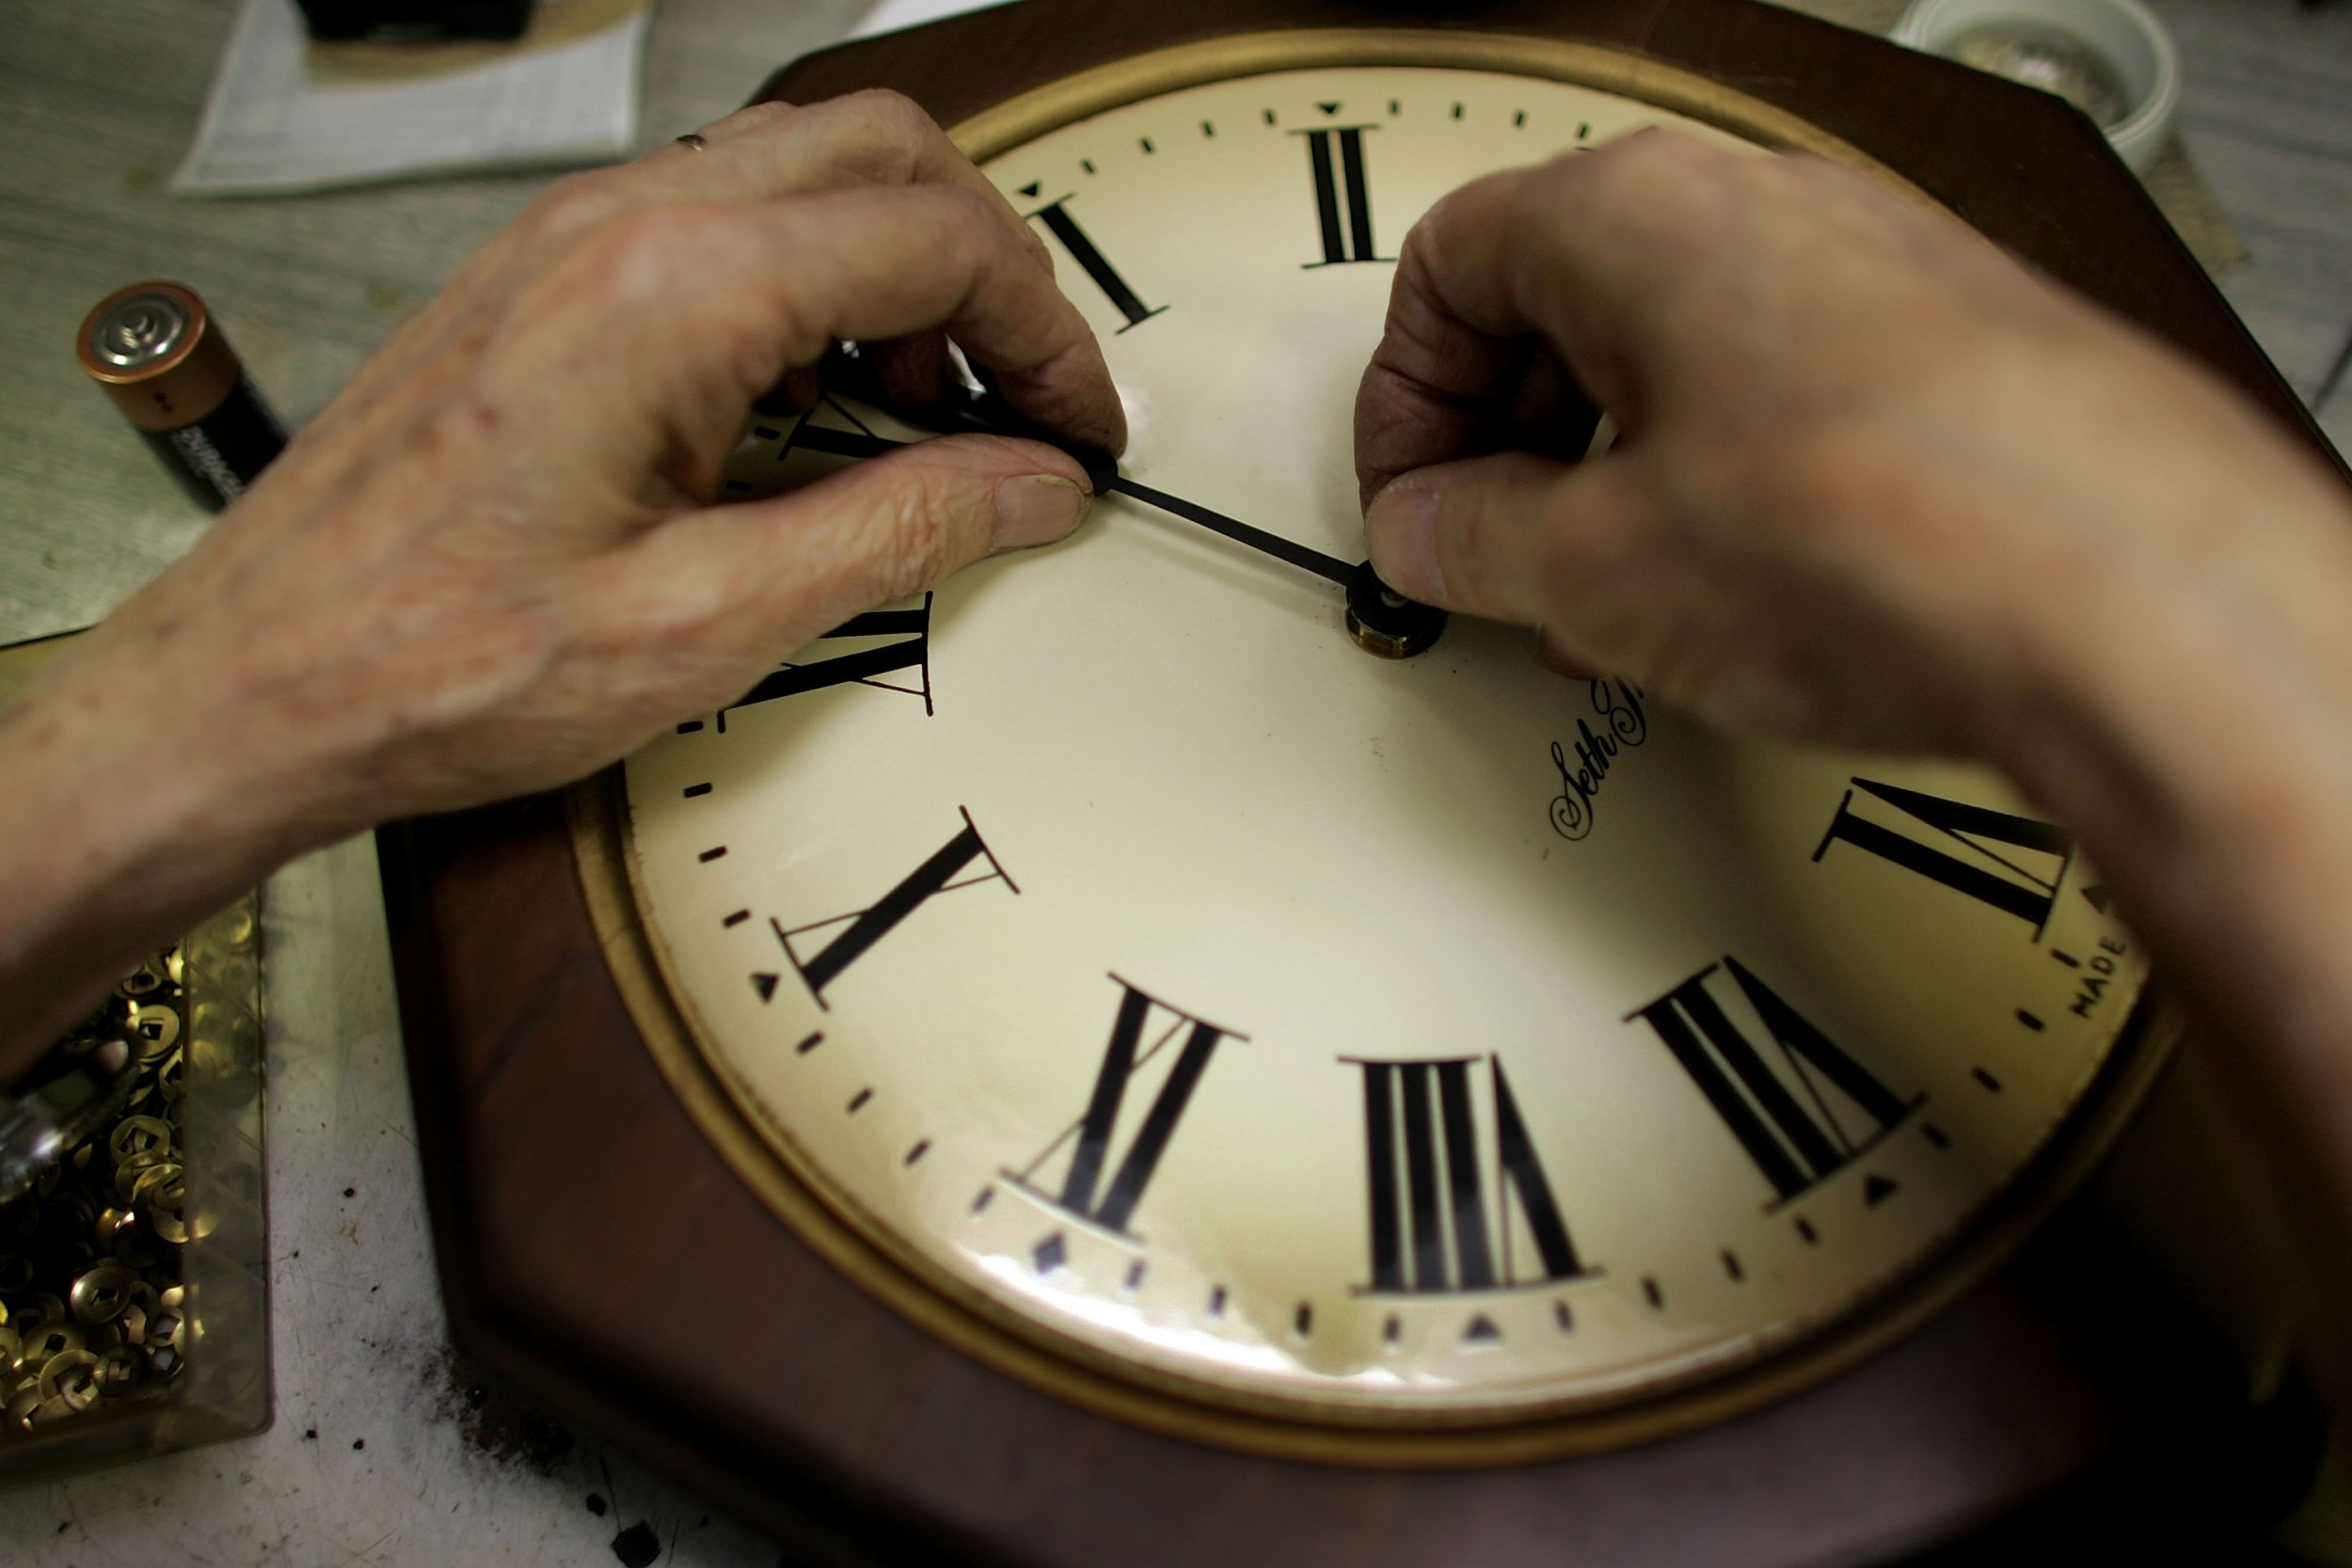 The controversial side effects of daylight saving time dst